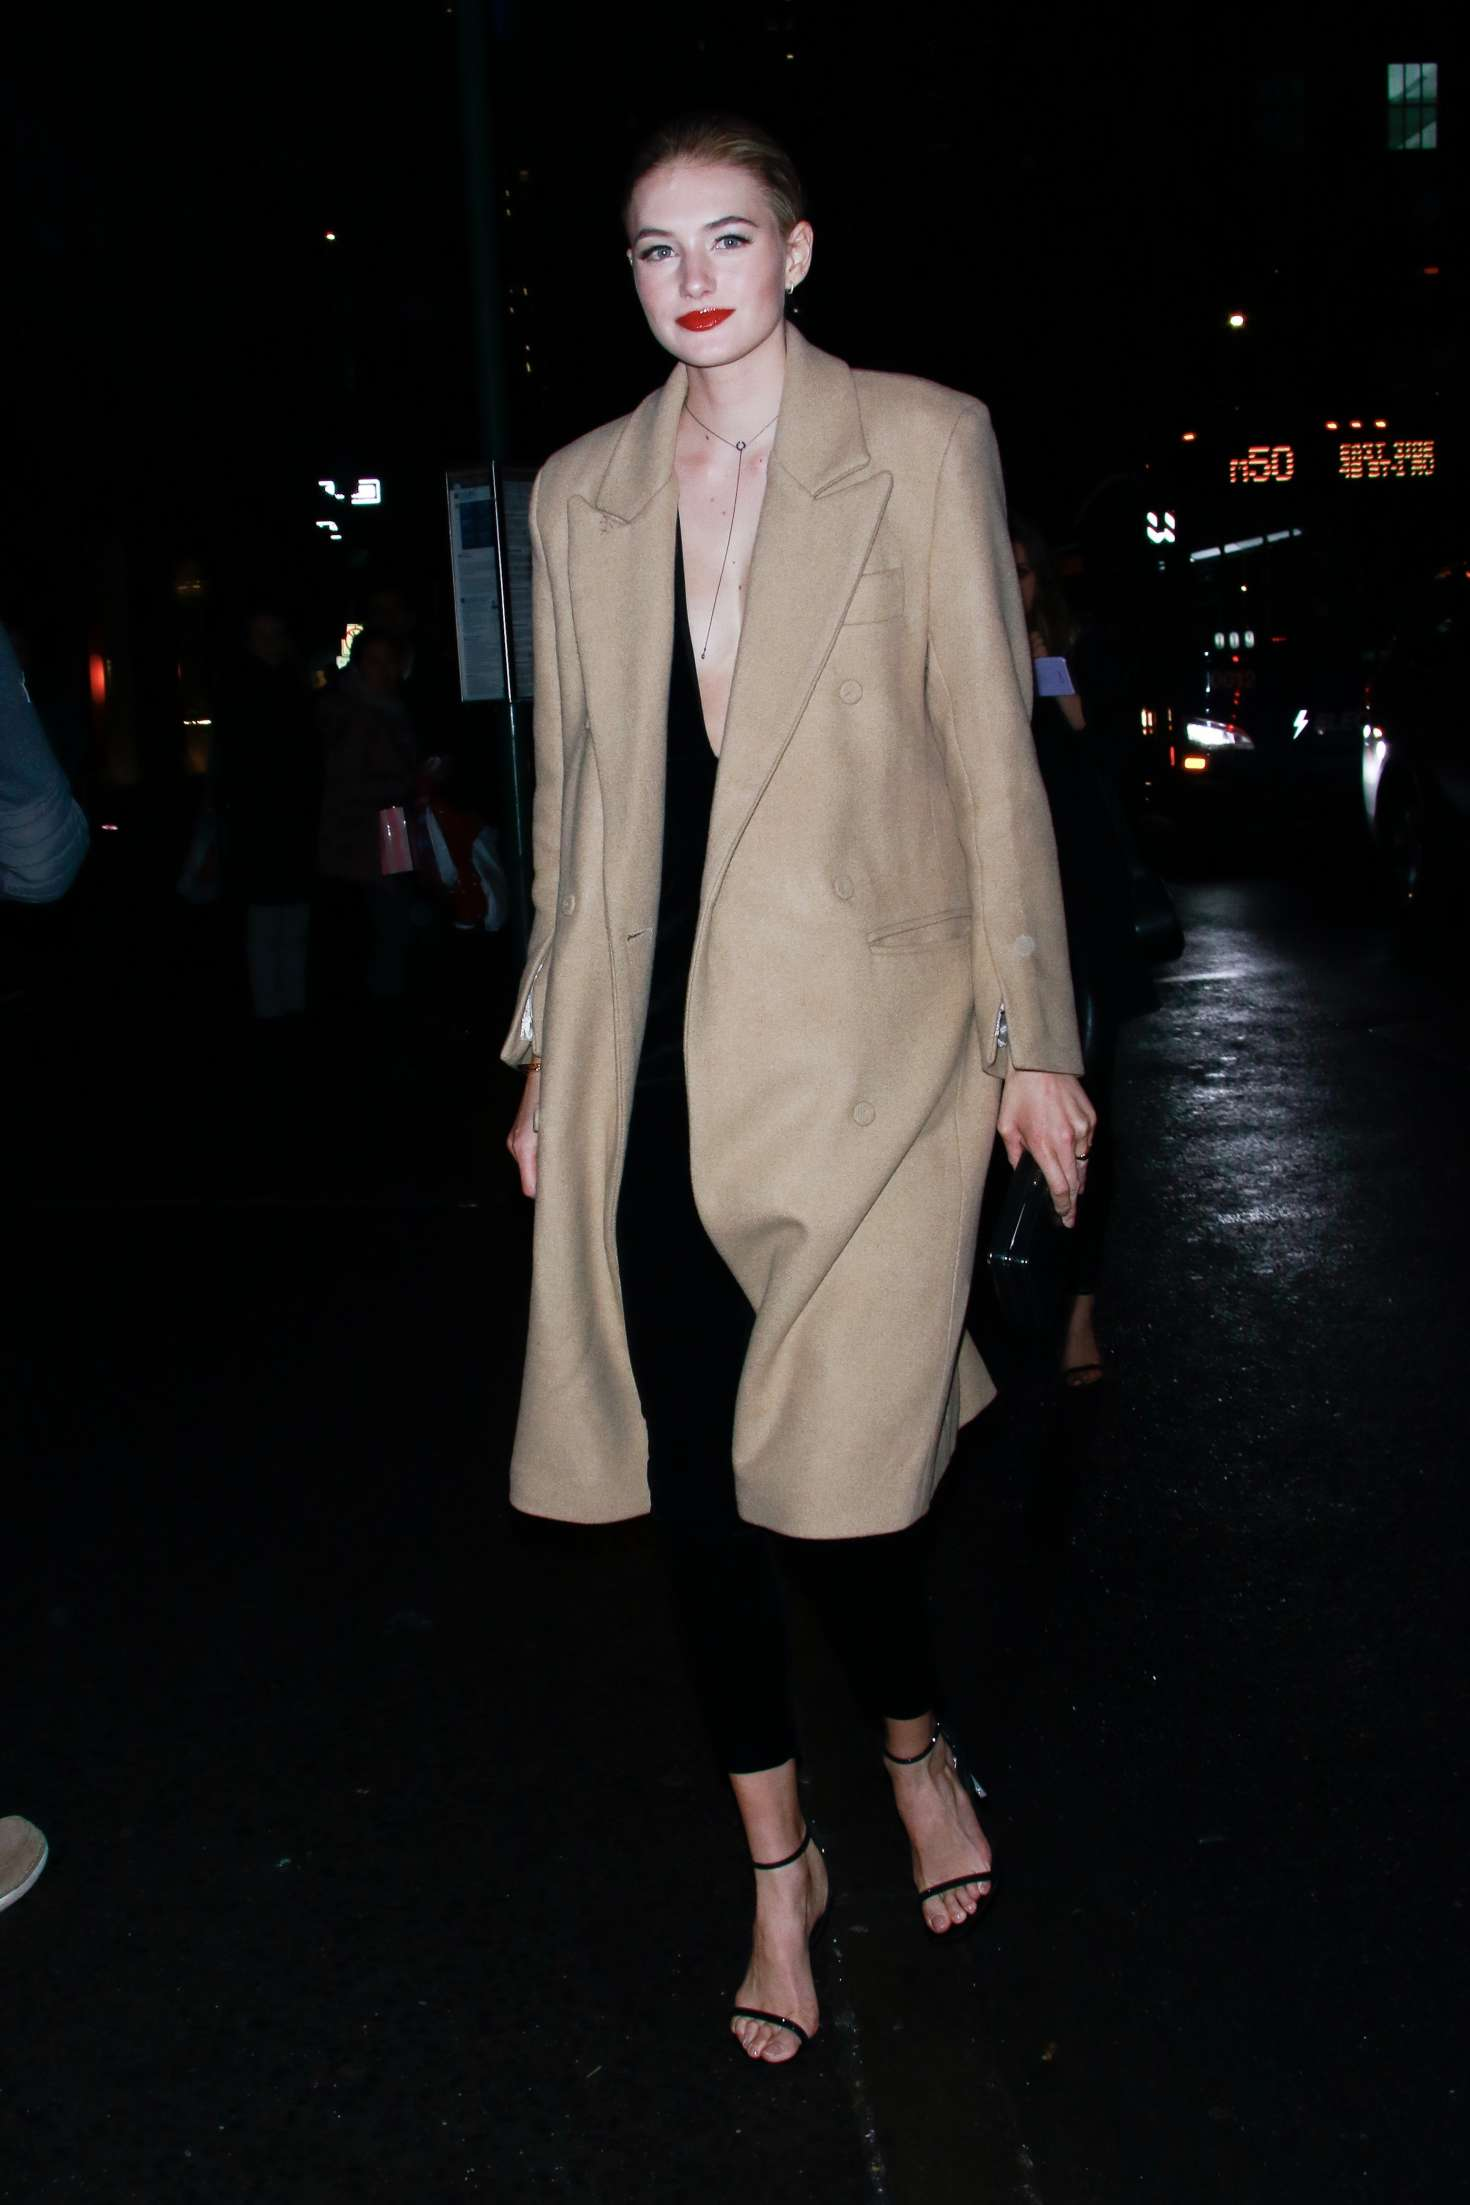 Sanne Vloet - Out and about in New York